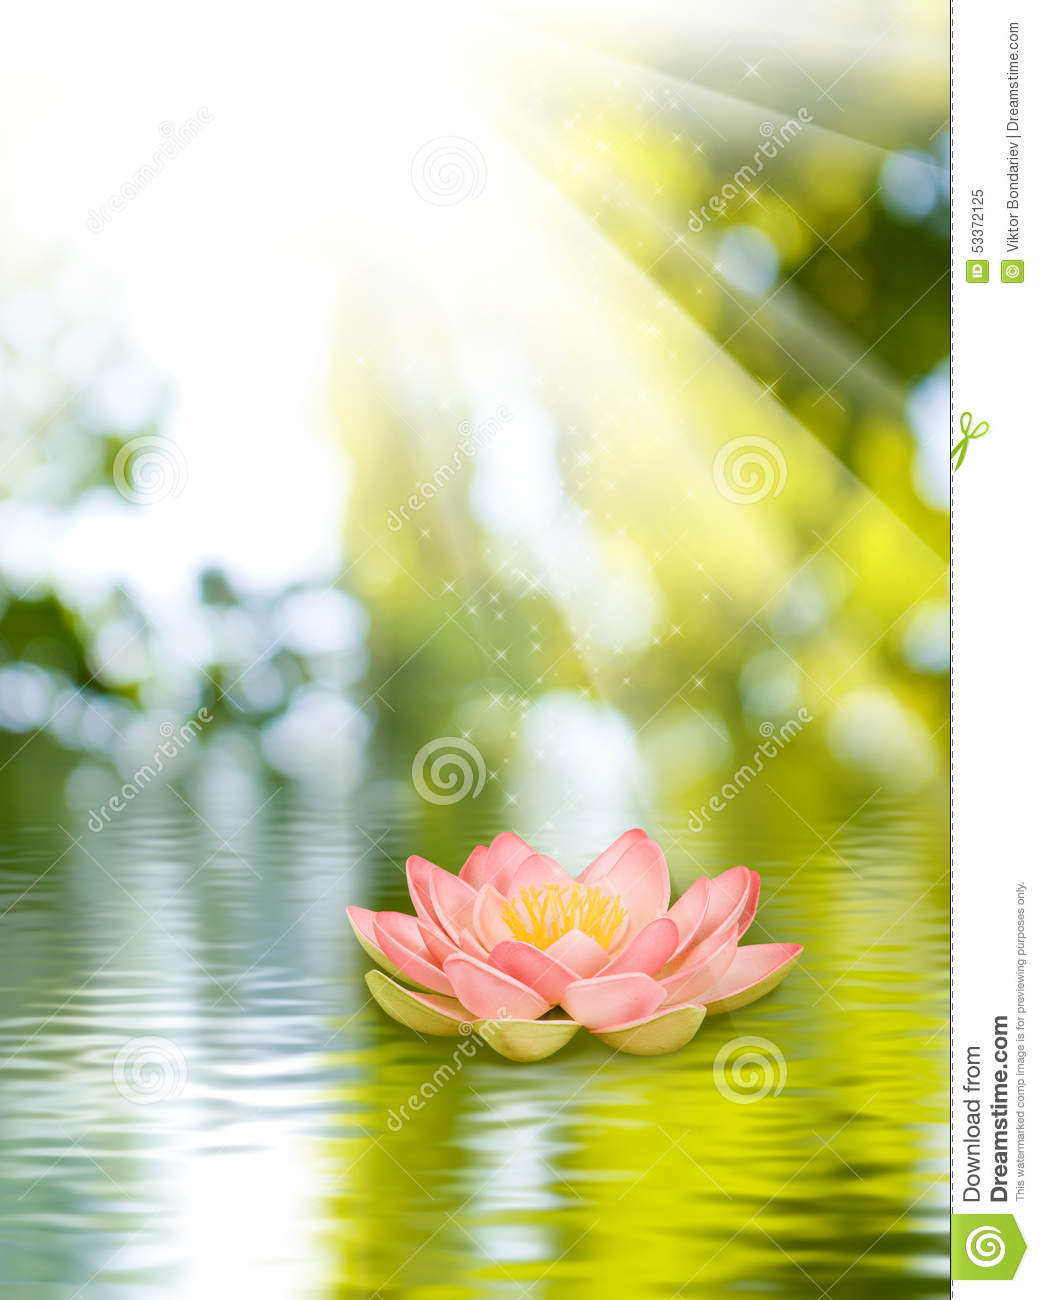 Lotus Flower On The Water Stock Image Image Of Blue 53372125